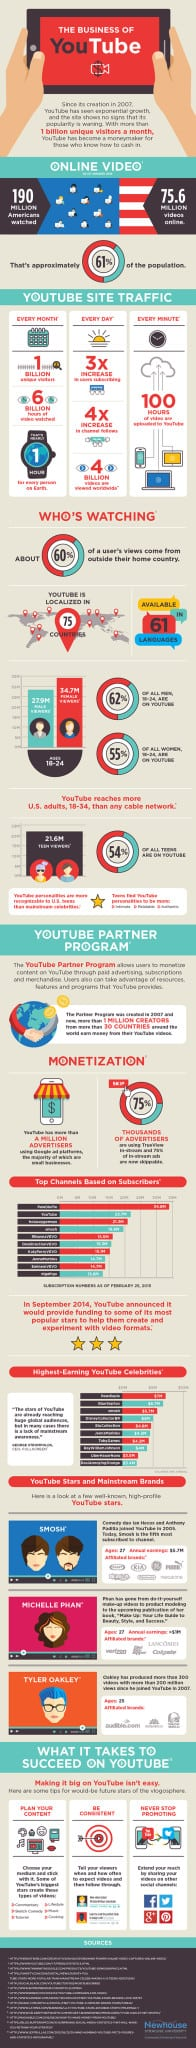 The Business of YouTube - Syracuse University's Newhouse School of Communications